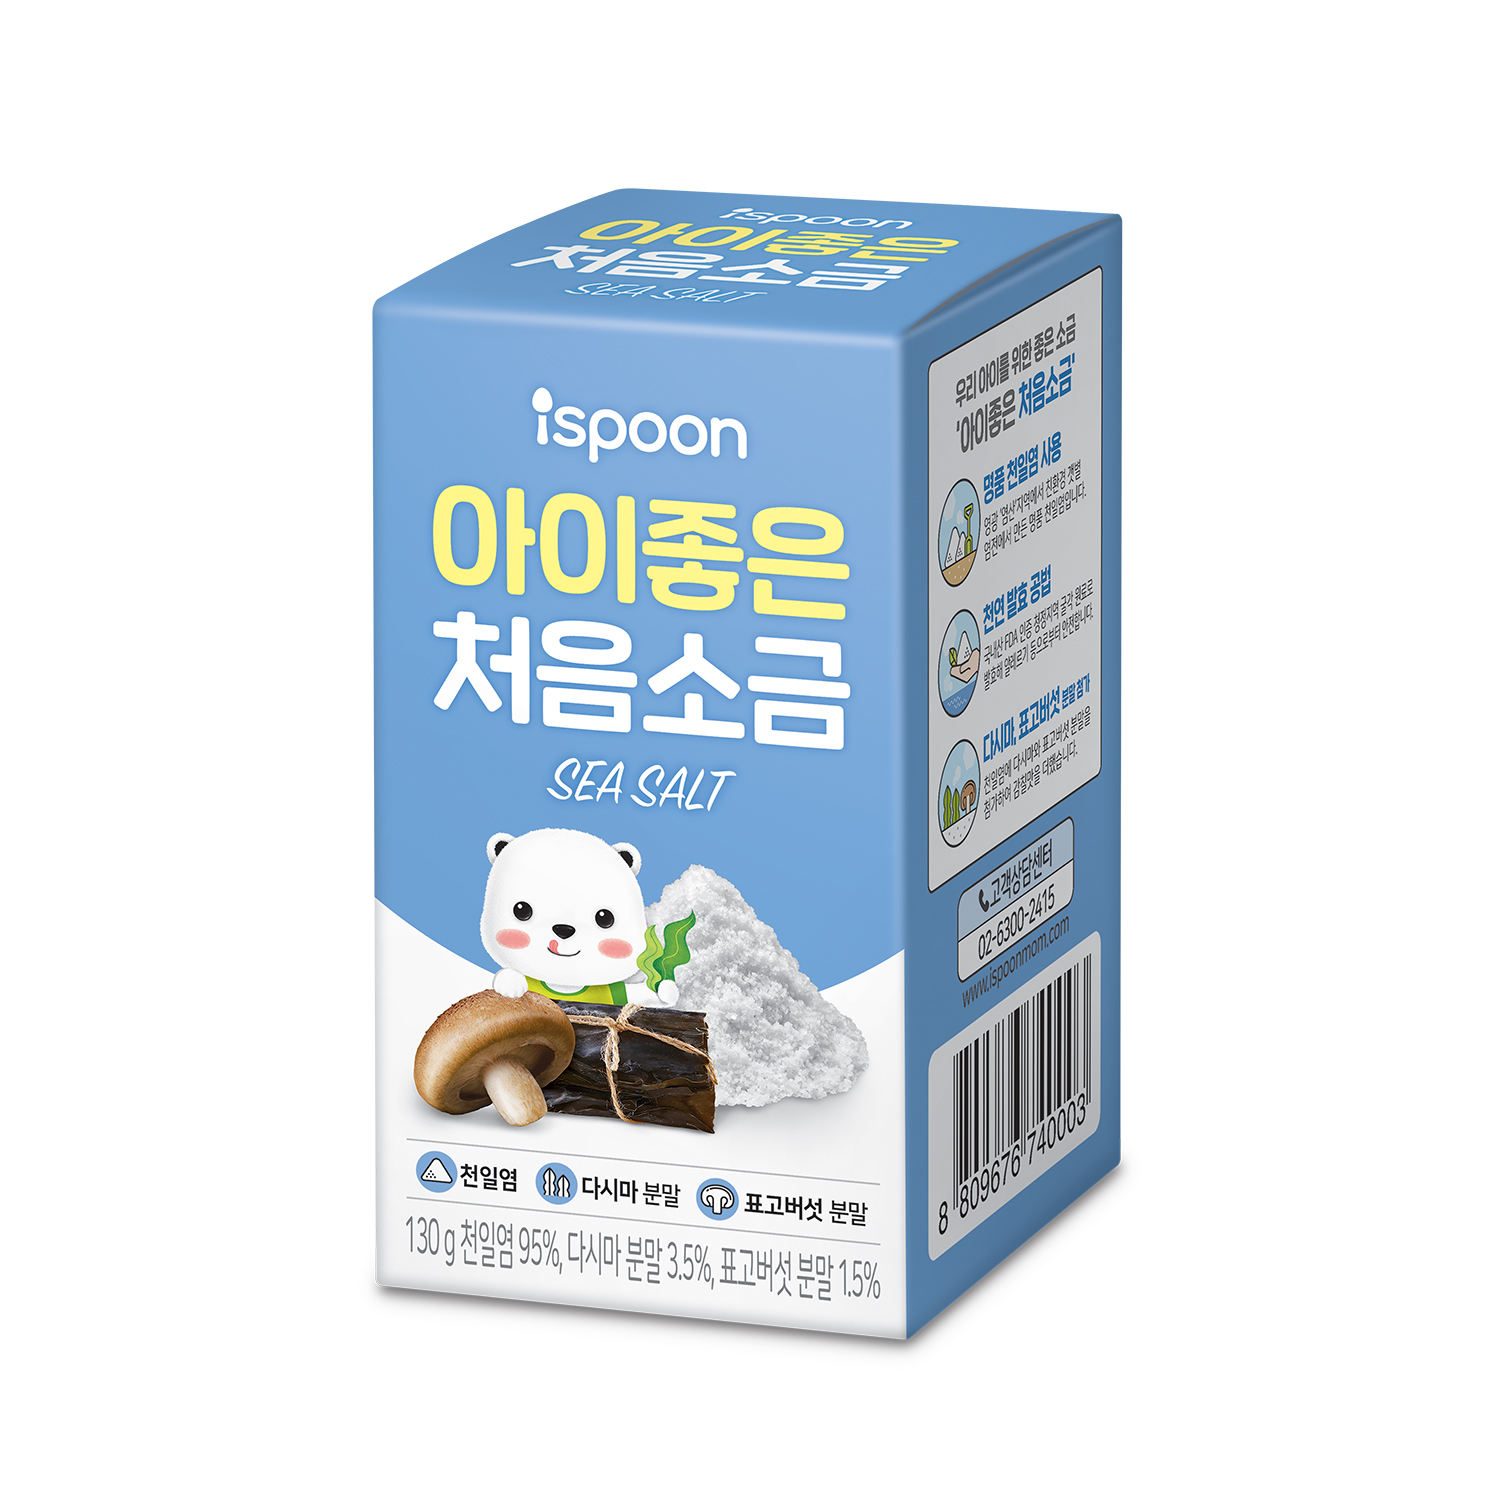 Korean Baby Food Seasoning Sea Salt 130g Refined Light Brown 100 % Purity 0.13 Kg from KR 210390 HS_04 with HACCP Certification